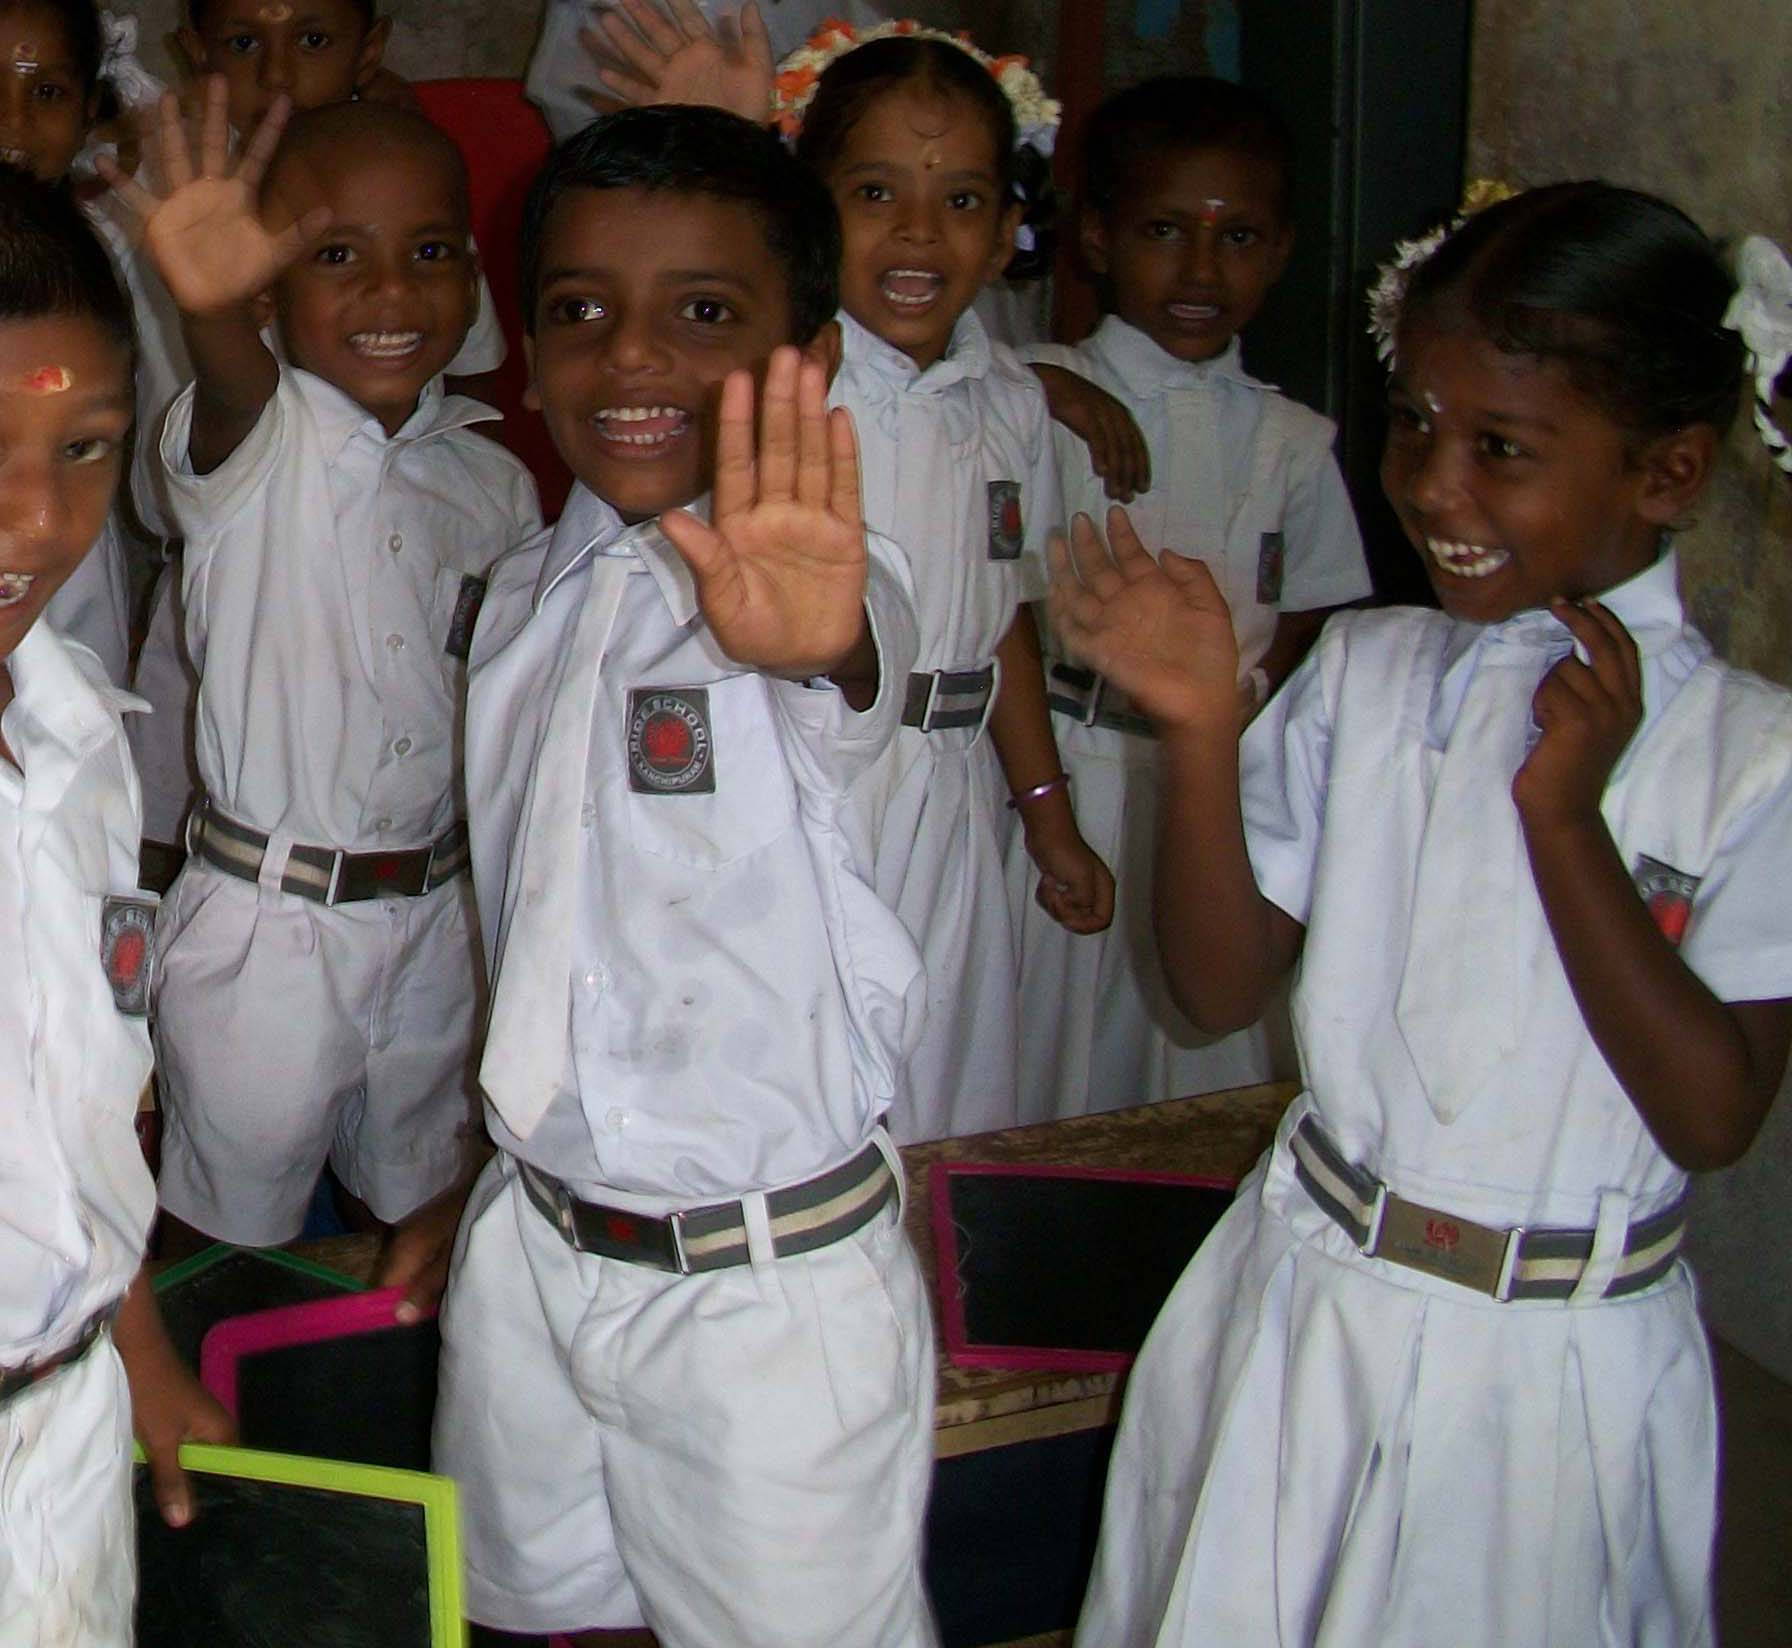 child labour tamil Essays - largest database of quality sample essays and research papers on child labour tamil.